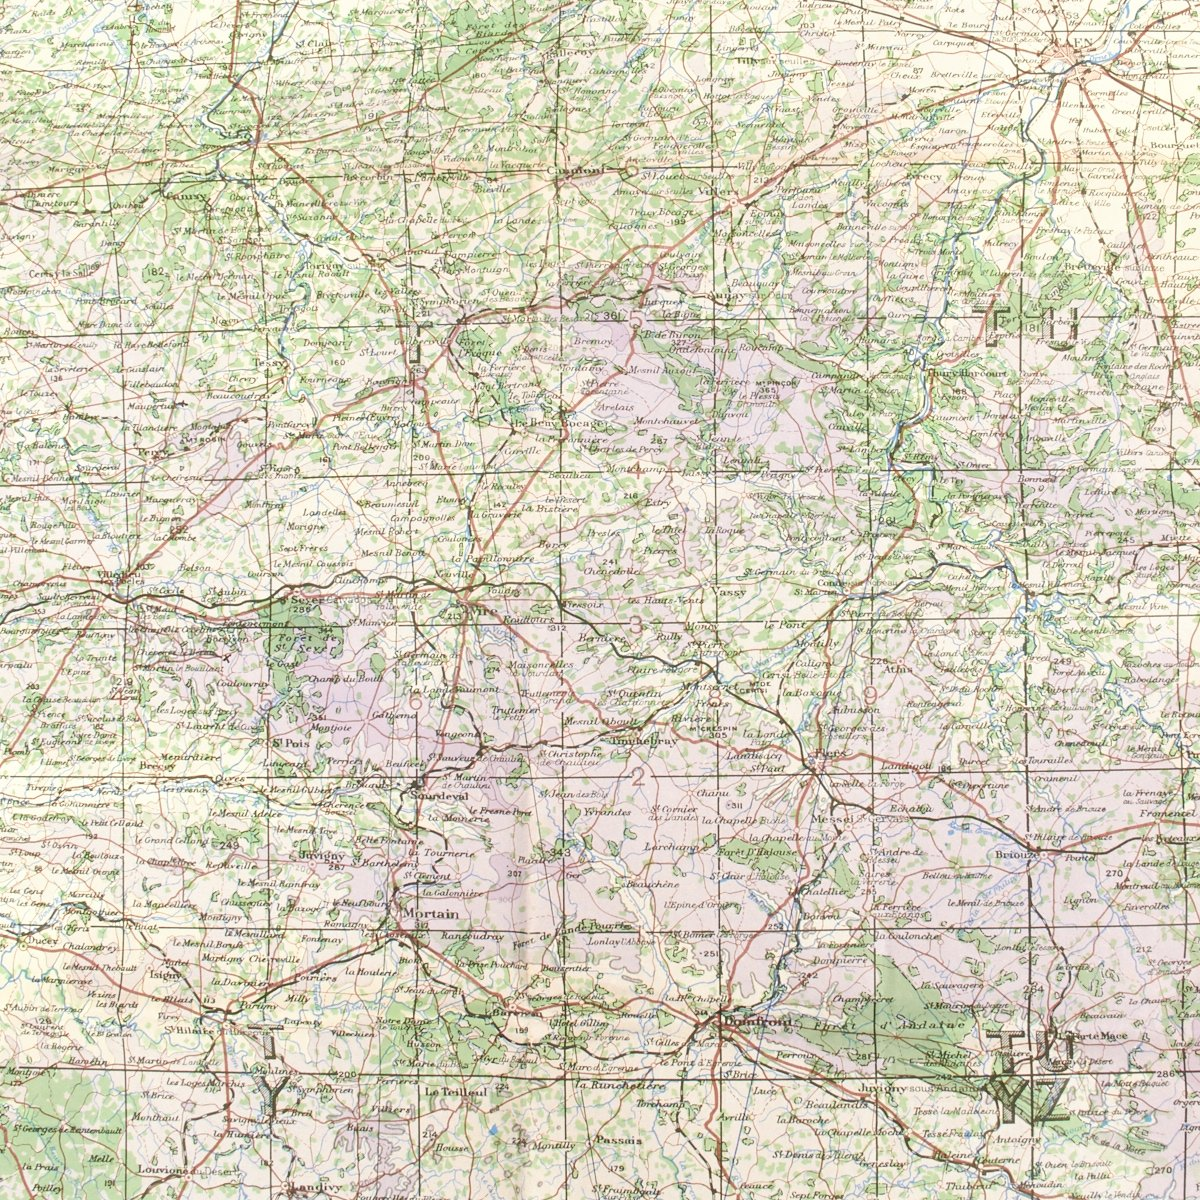 Map Of Normandy France Detailed.Original U S Wwii D Day Map Of Normandy Cherbourg And Caen France